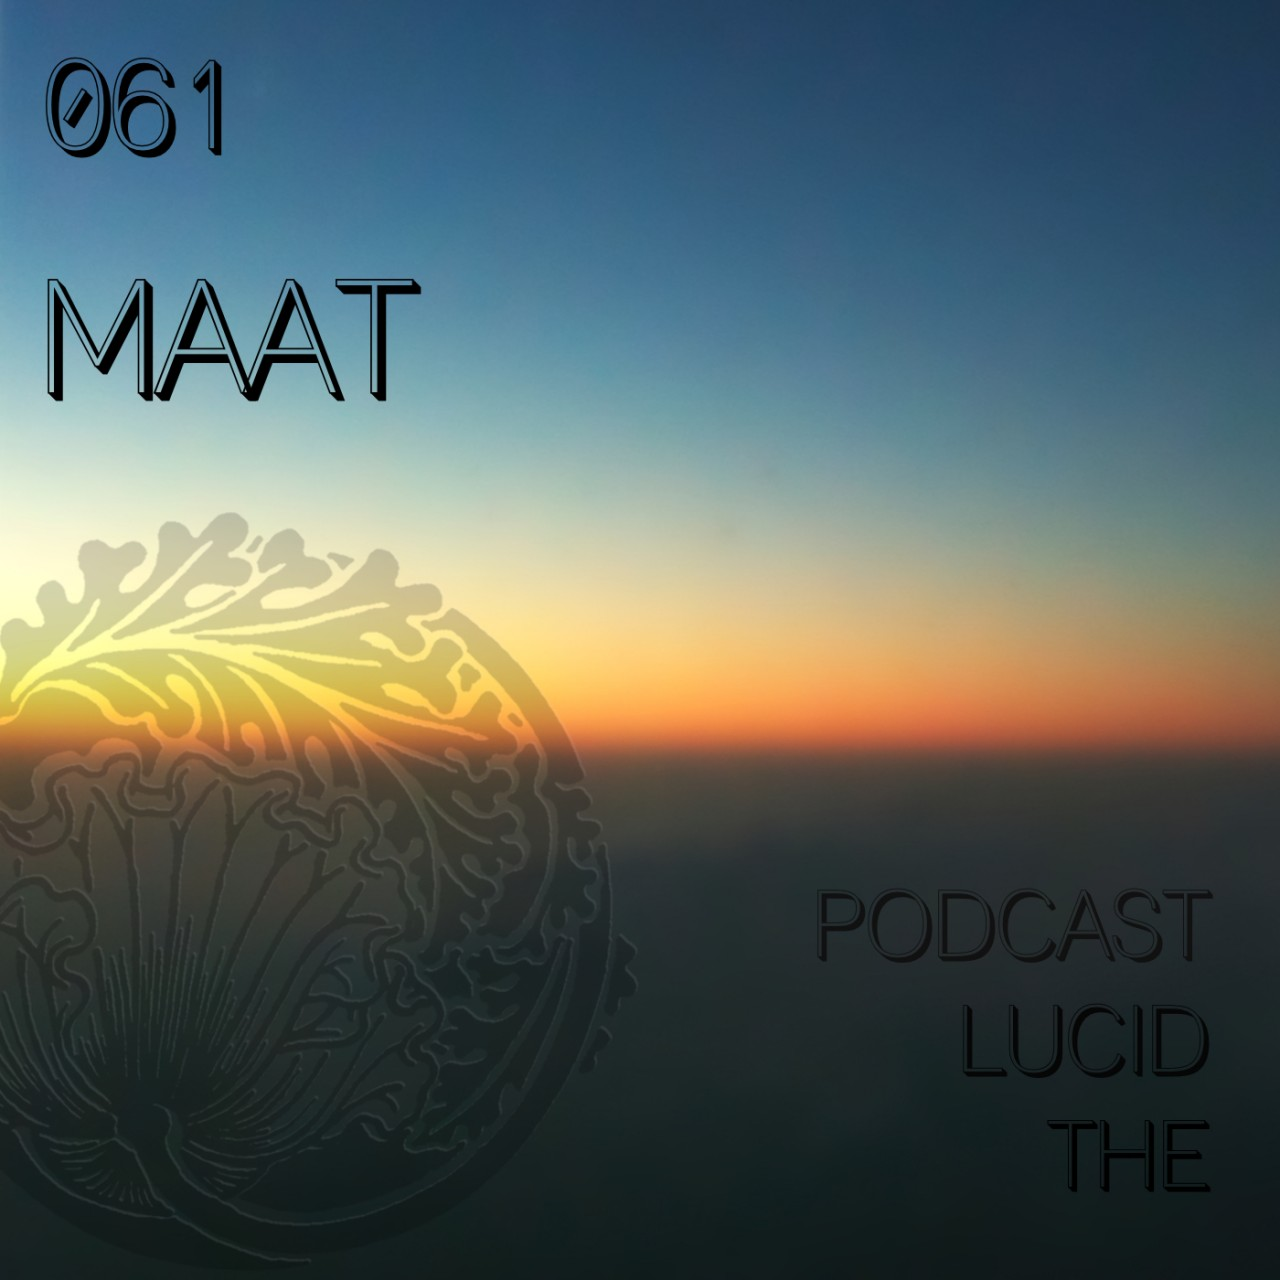 The Lucid Podcast 061 MAAT